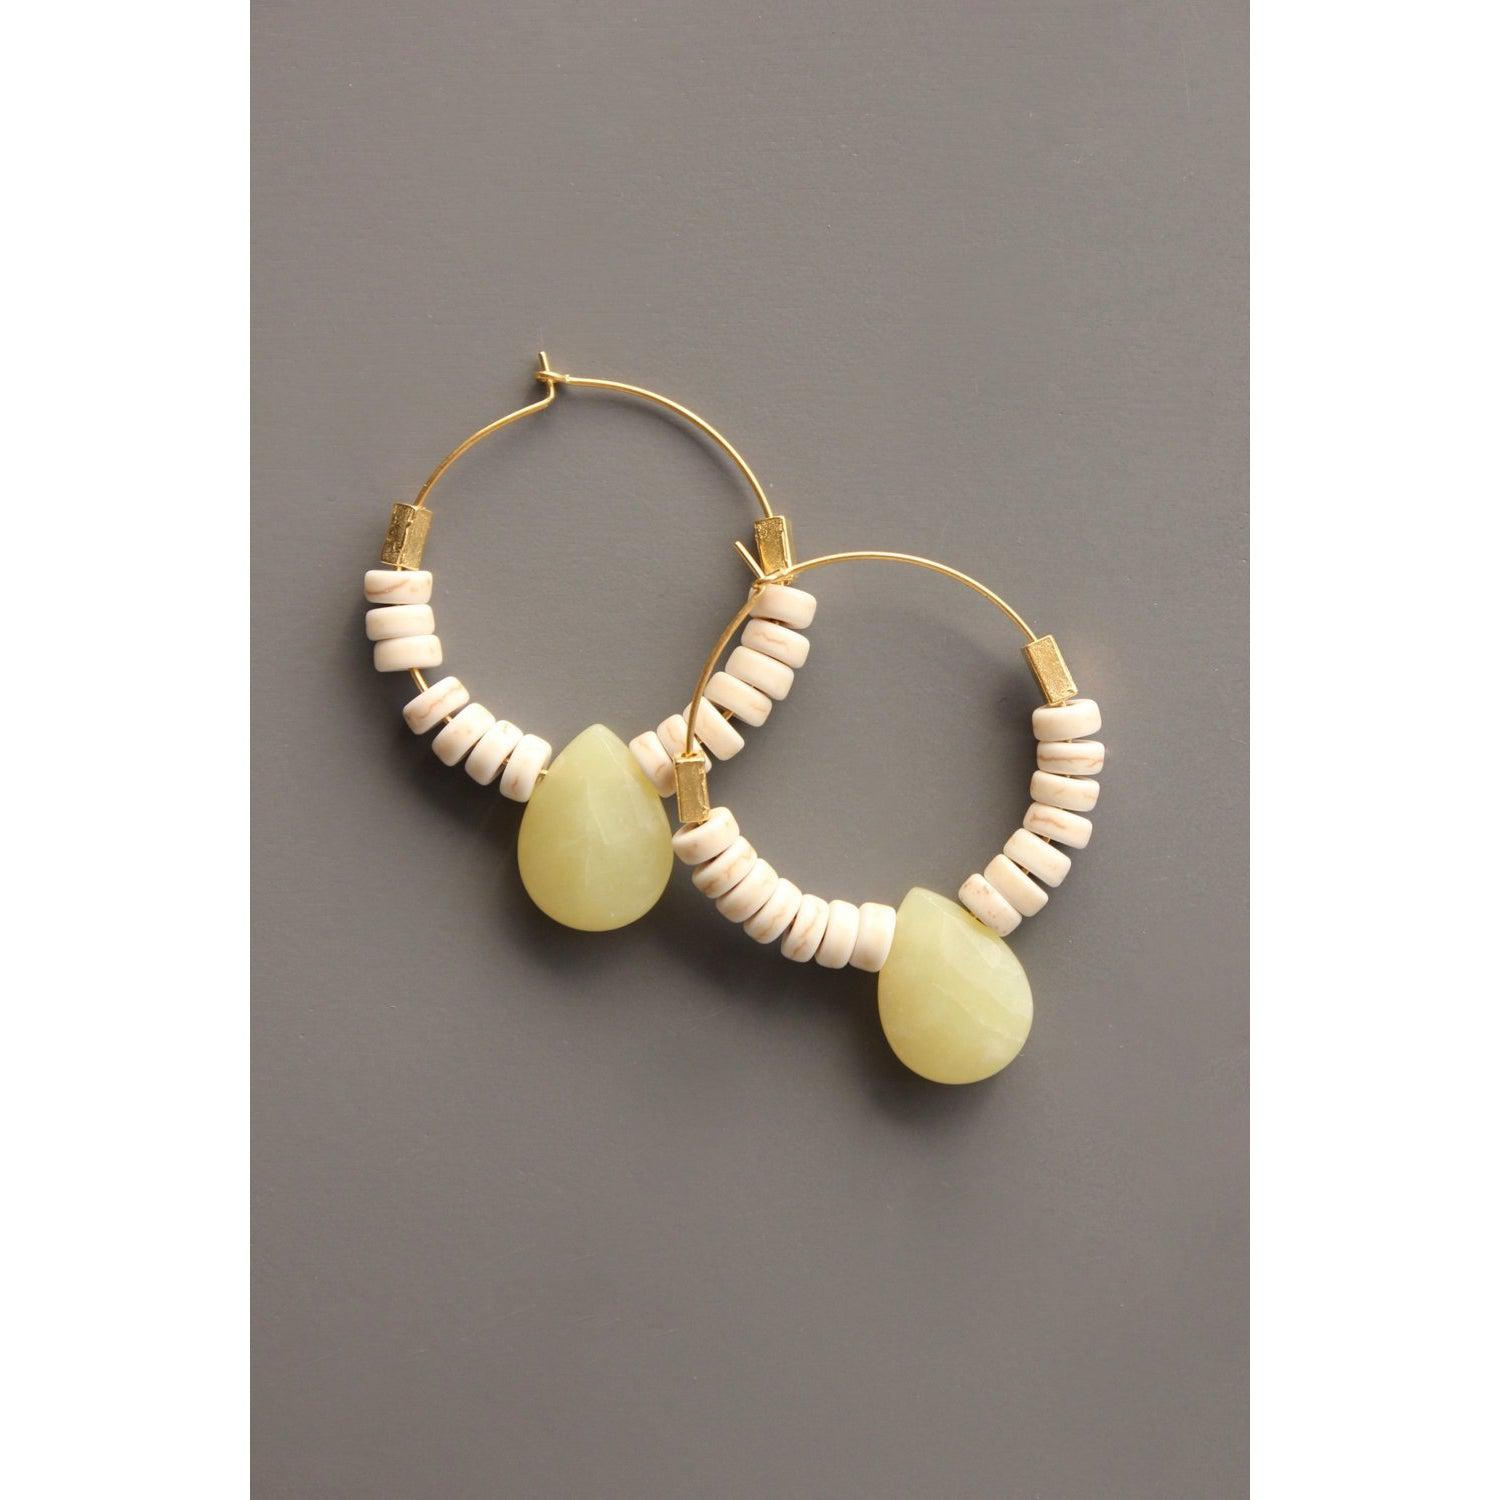 David Aubrey Earrings - SAHE26